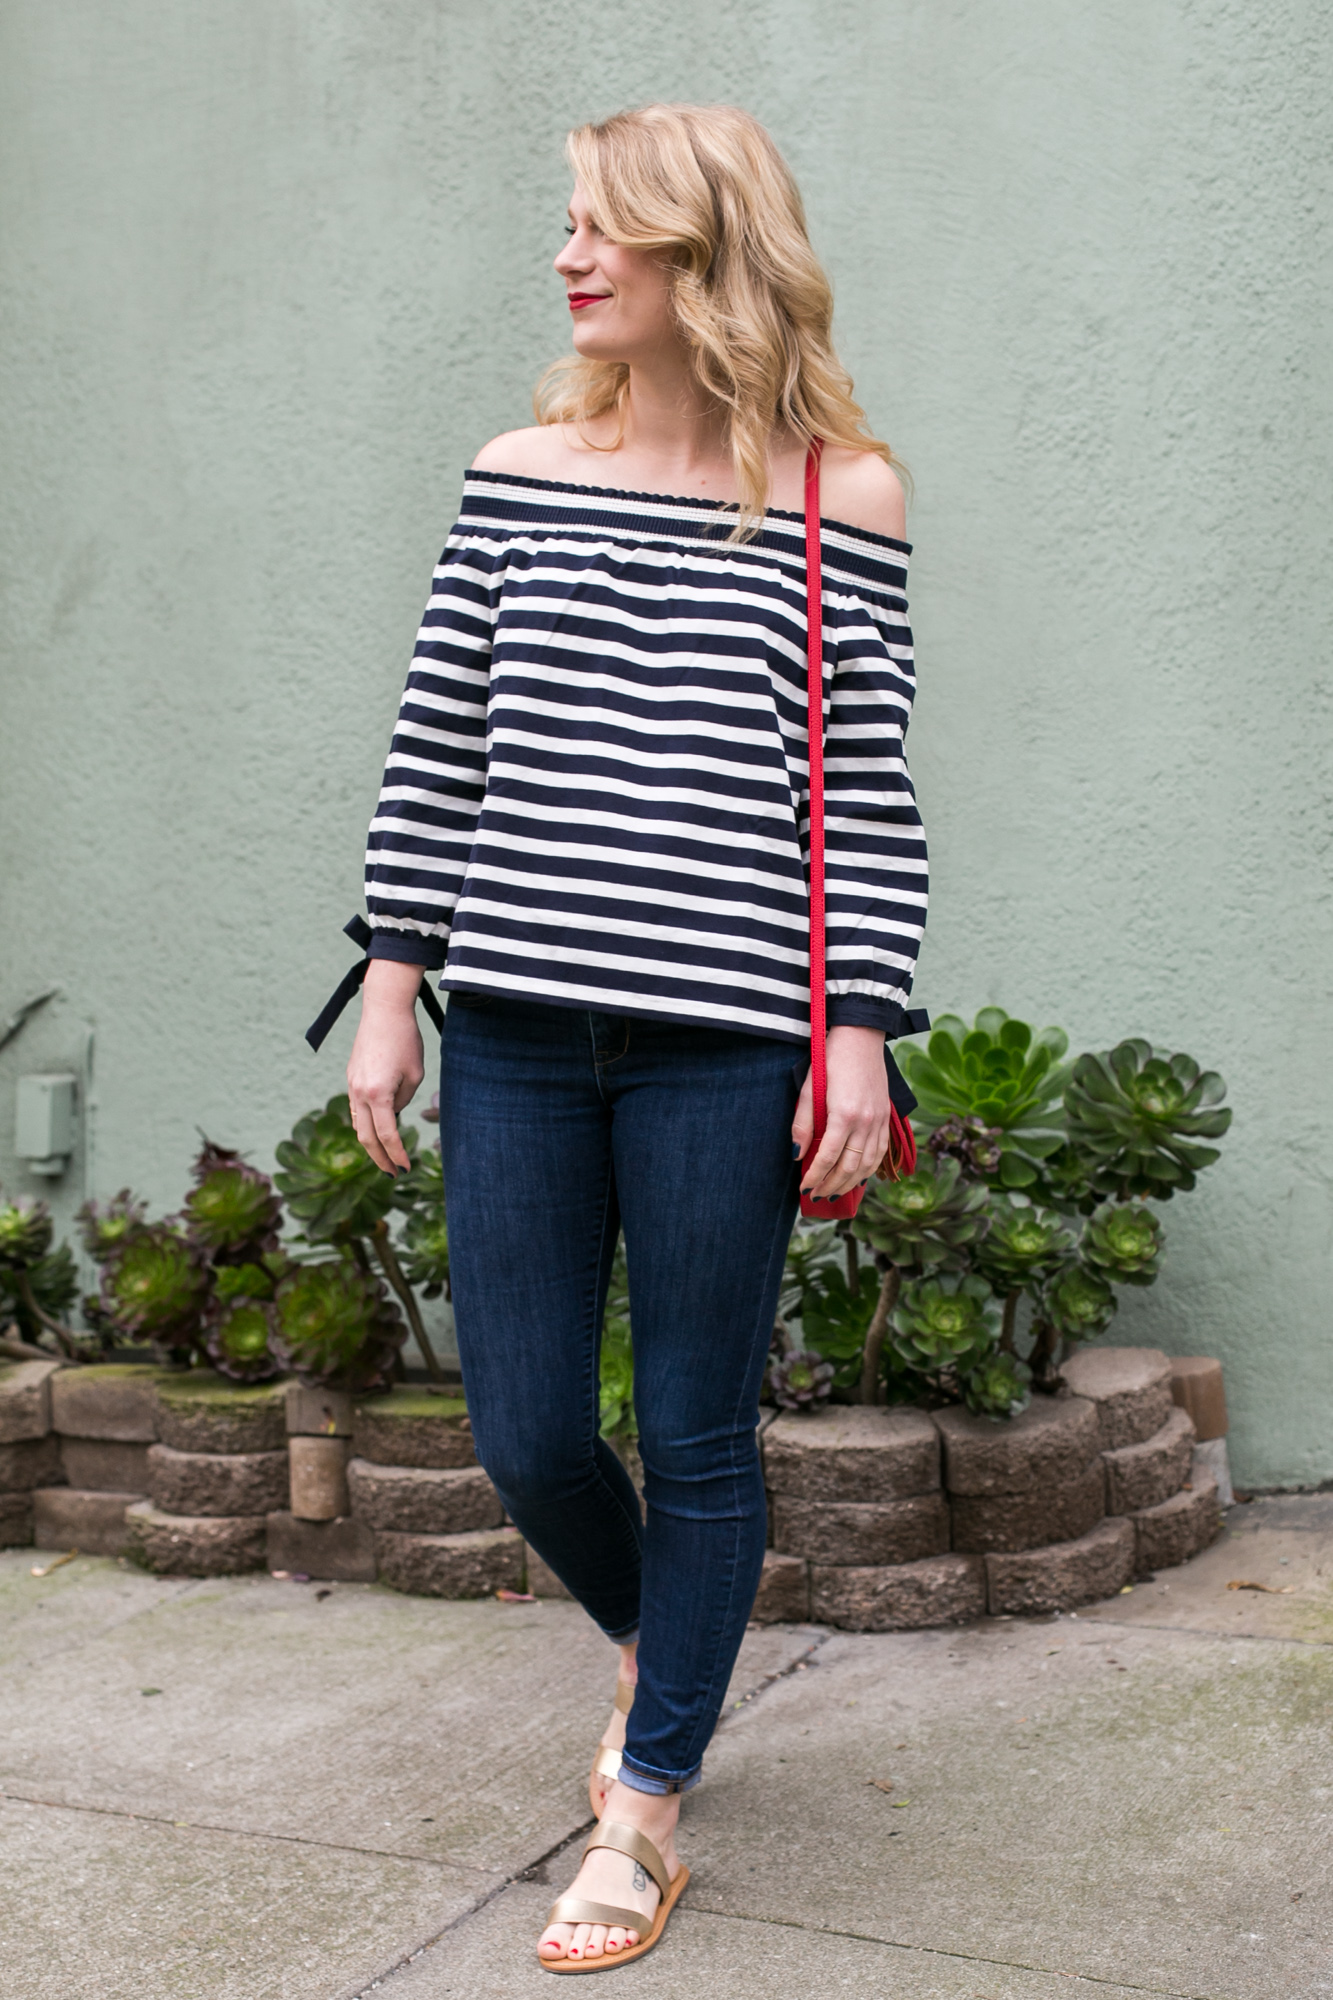 Stripes & Bows J. Crew Off The Shoulder Top.